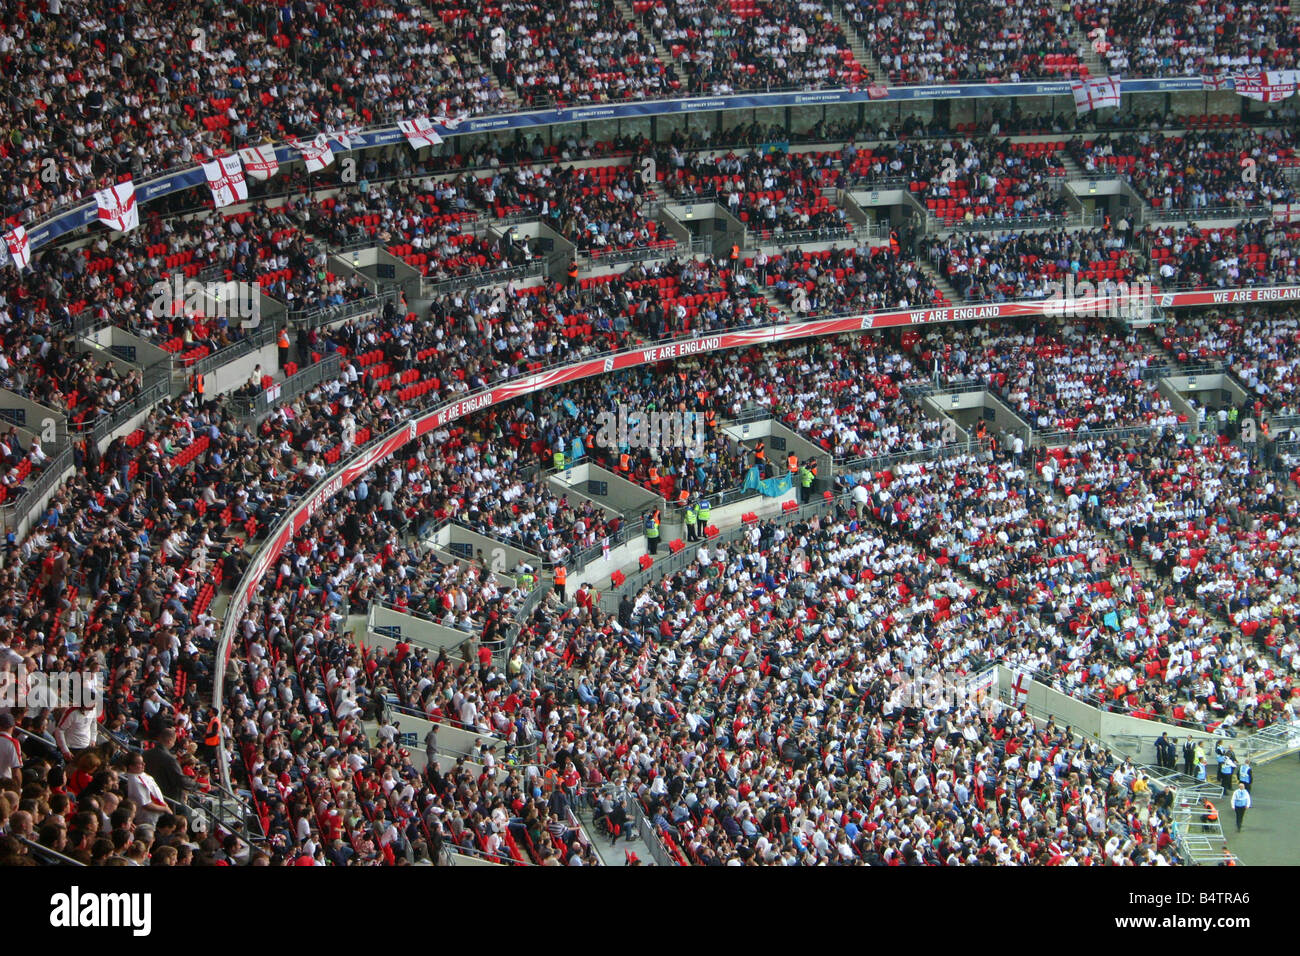 England fans at new Wembley stadium - Stock Image